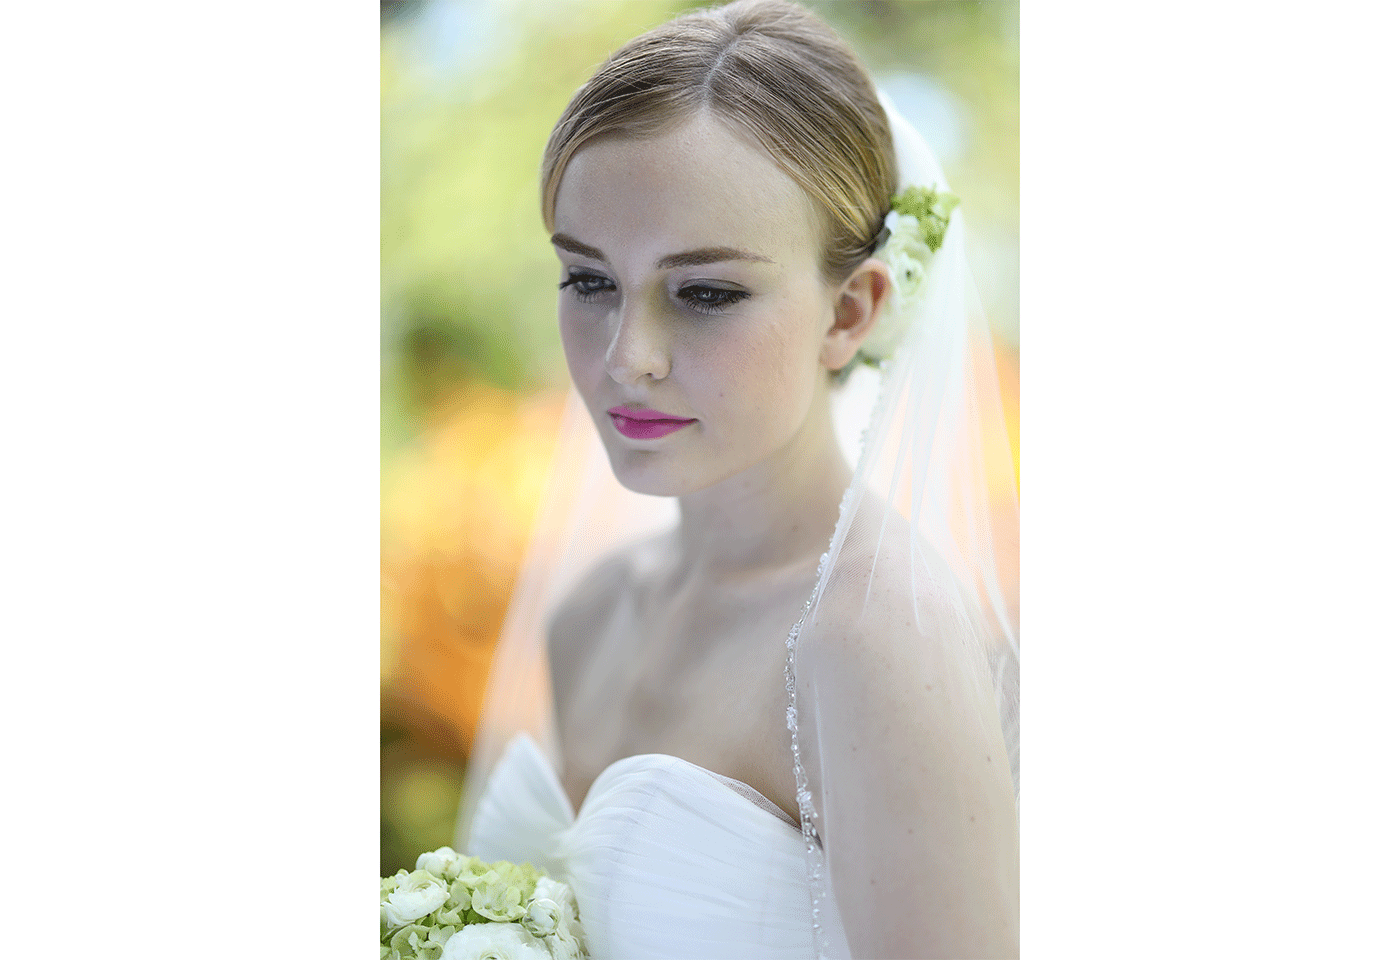 Portrait image of bride looking down